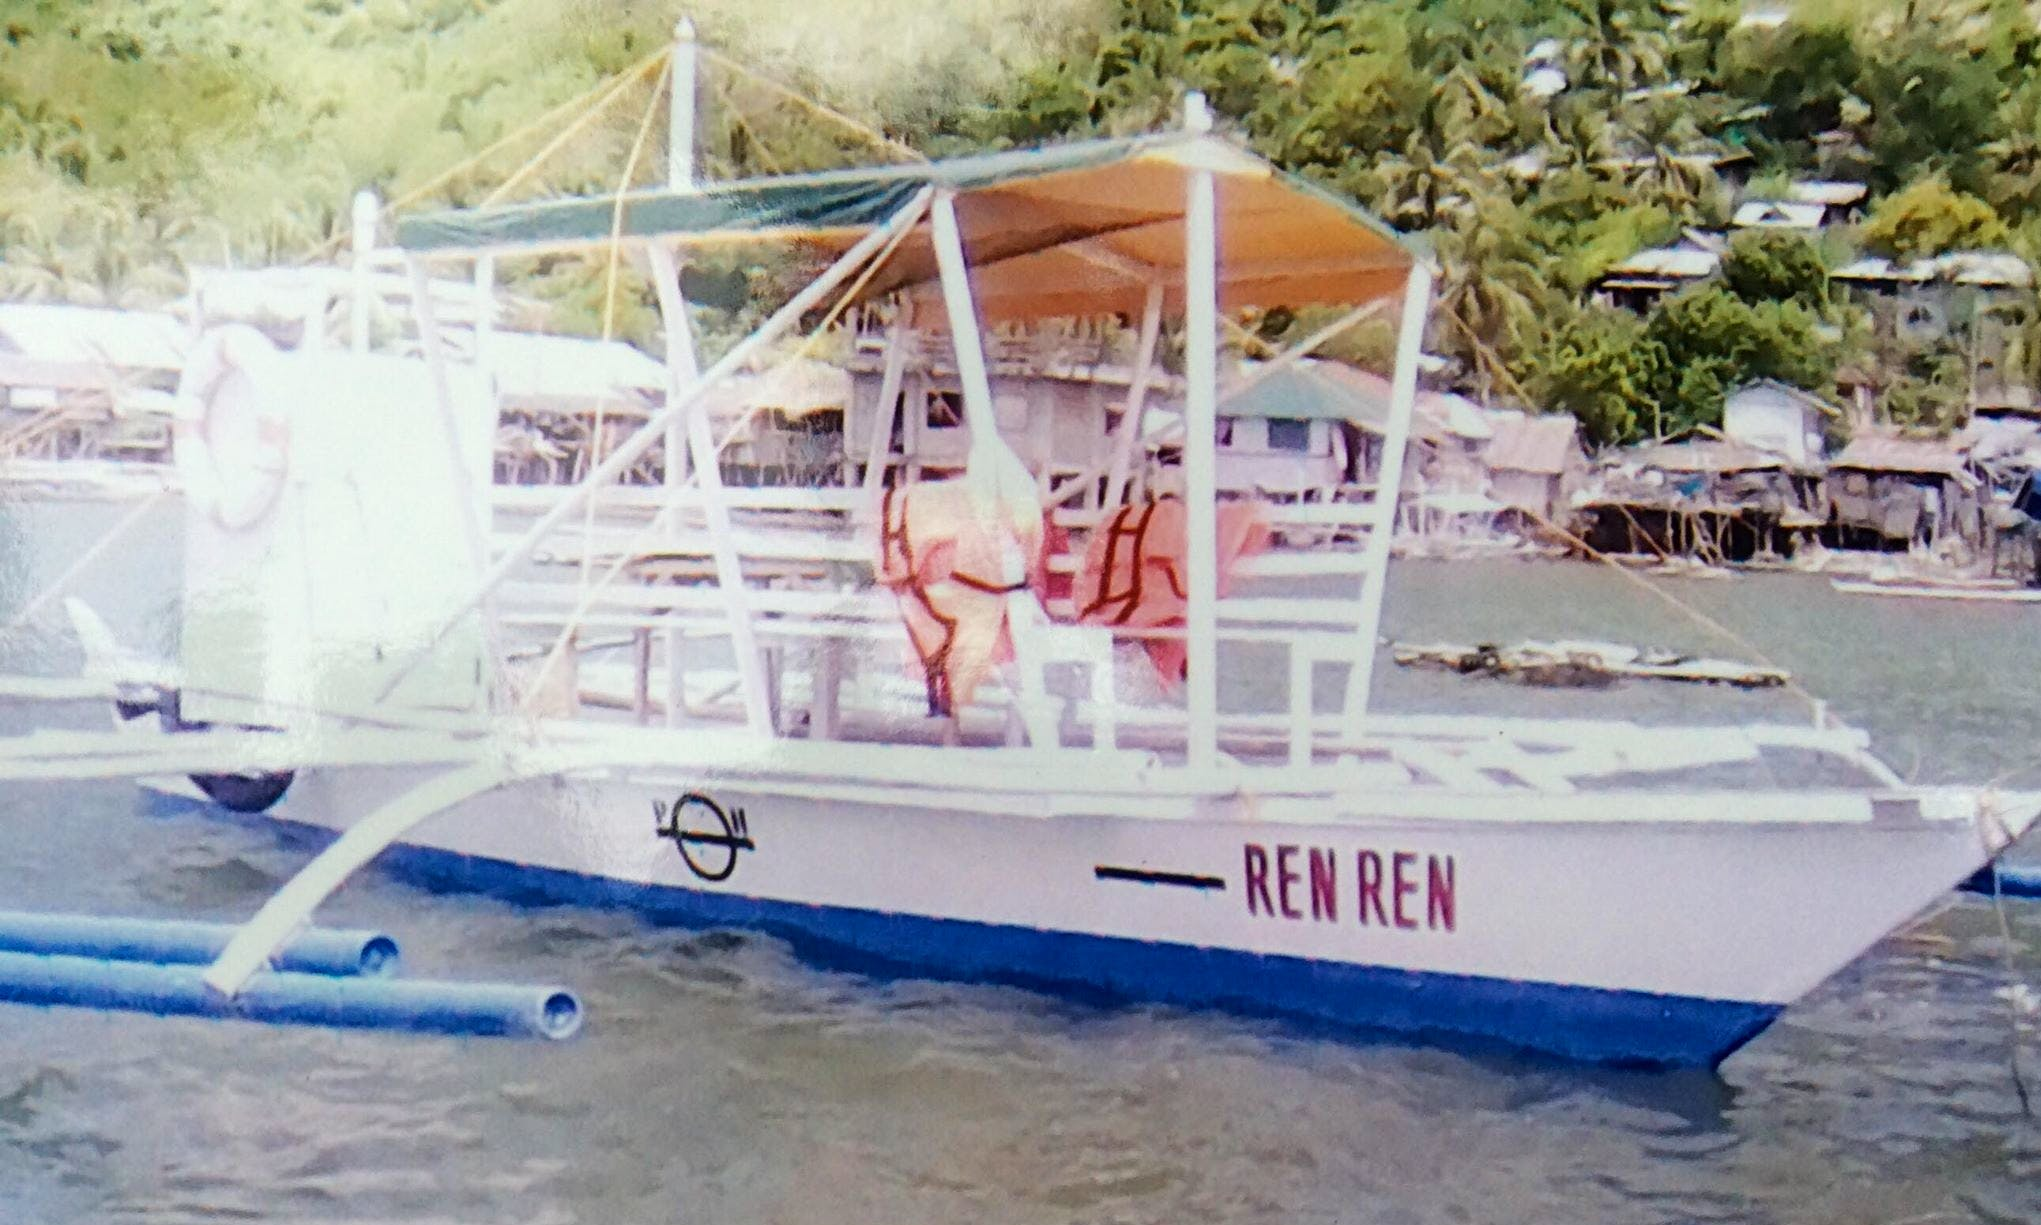 Charter a Traditional Boat in Quezon City, Philippines